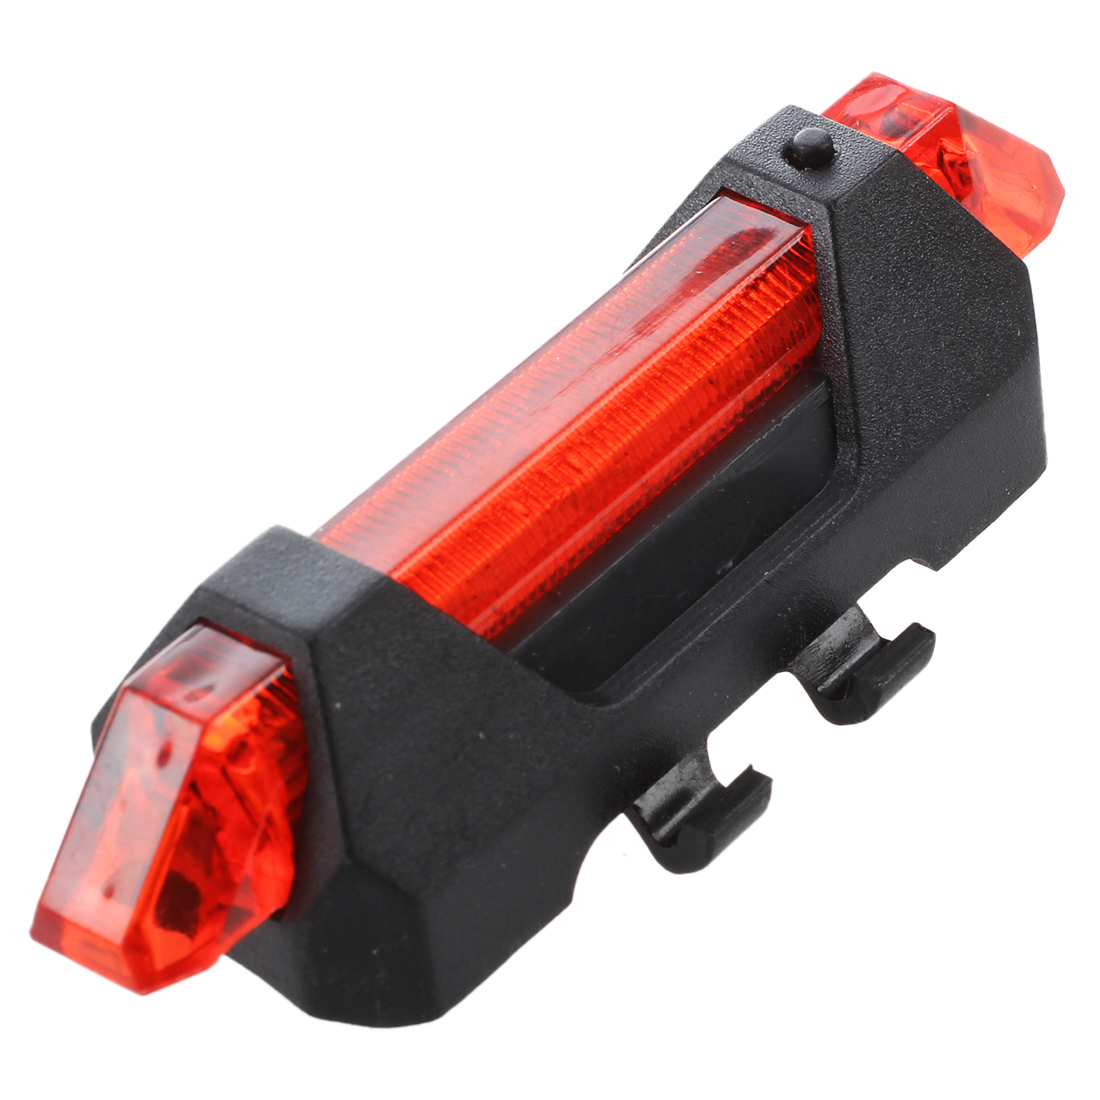 Good Deal 5LED Bicycle Rear Tail Lights Flash USB Rechargeable Bike Safety Lamp Waterproof Black+White Black+Red Black+Blue 13